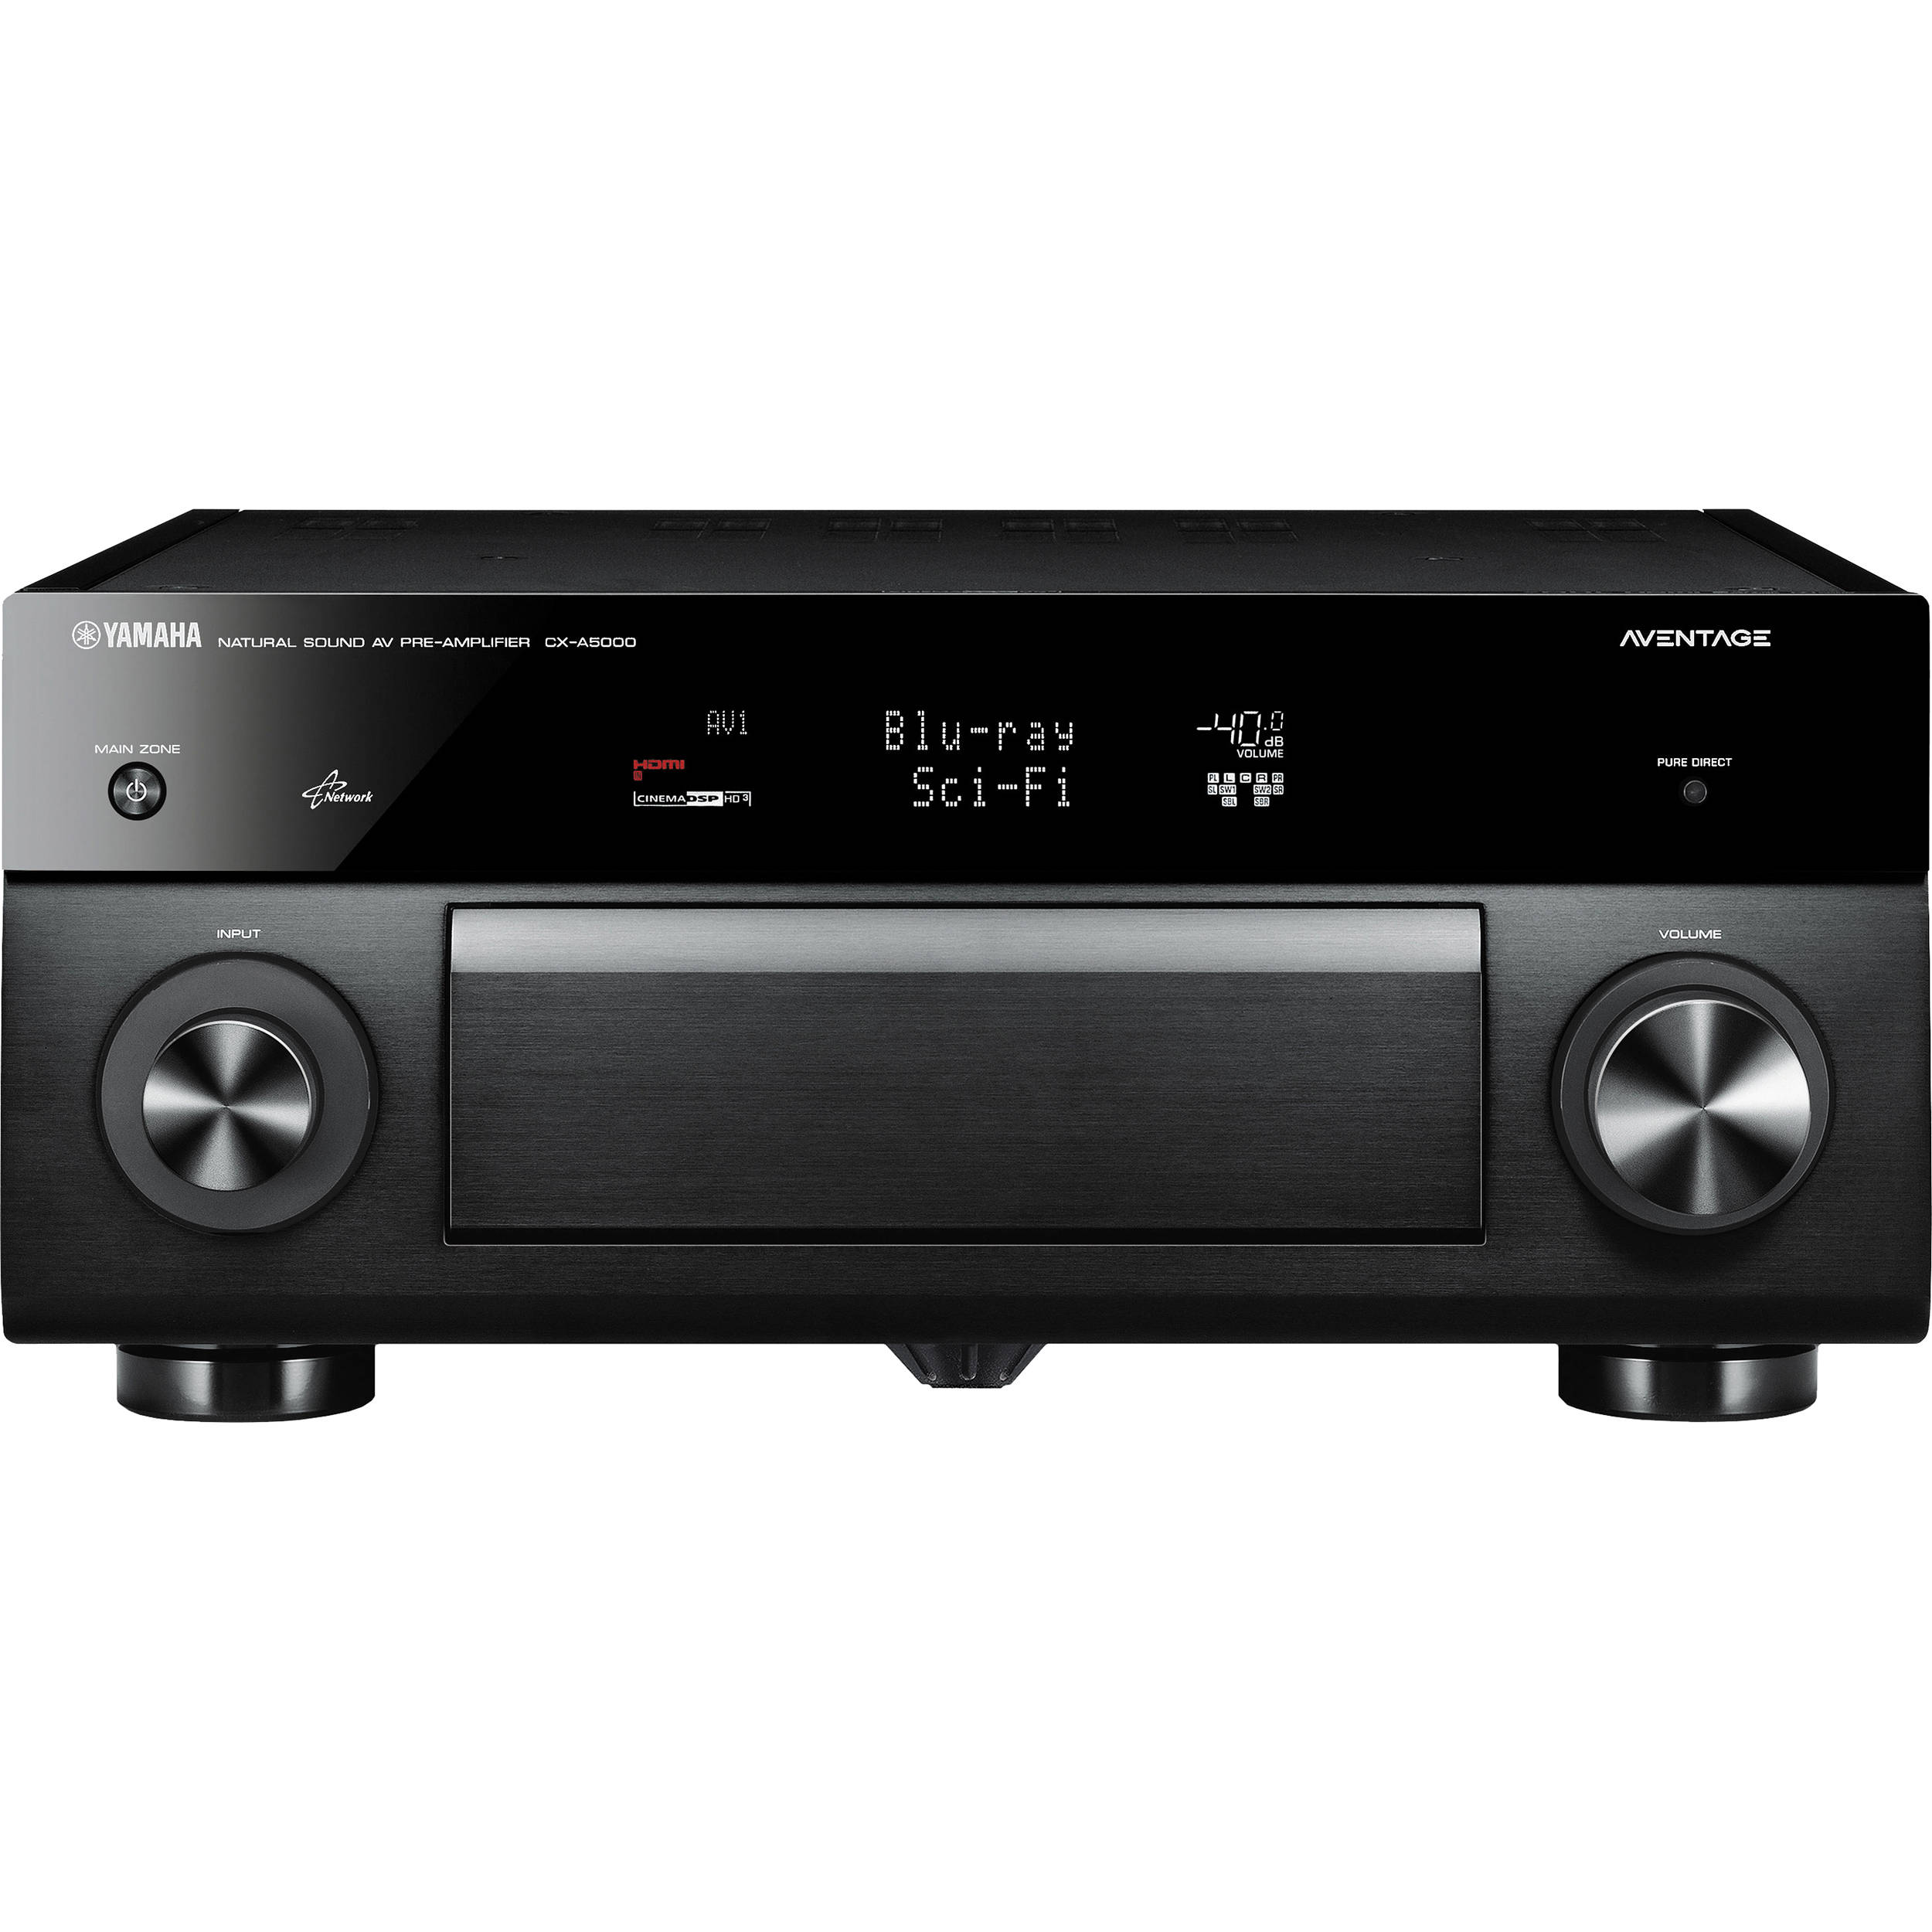 Yamaha aventage cx a5000 11 2 channel a v preamplifier for Yamaha aventage cx a5000